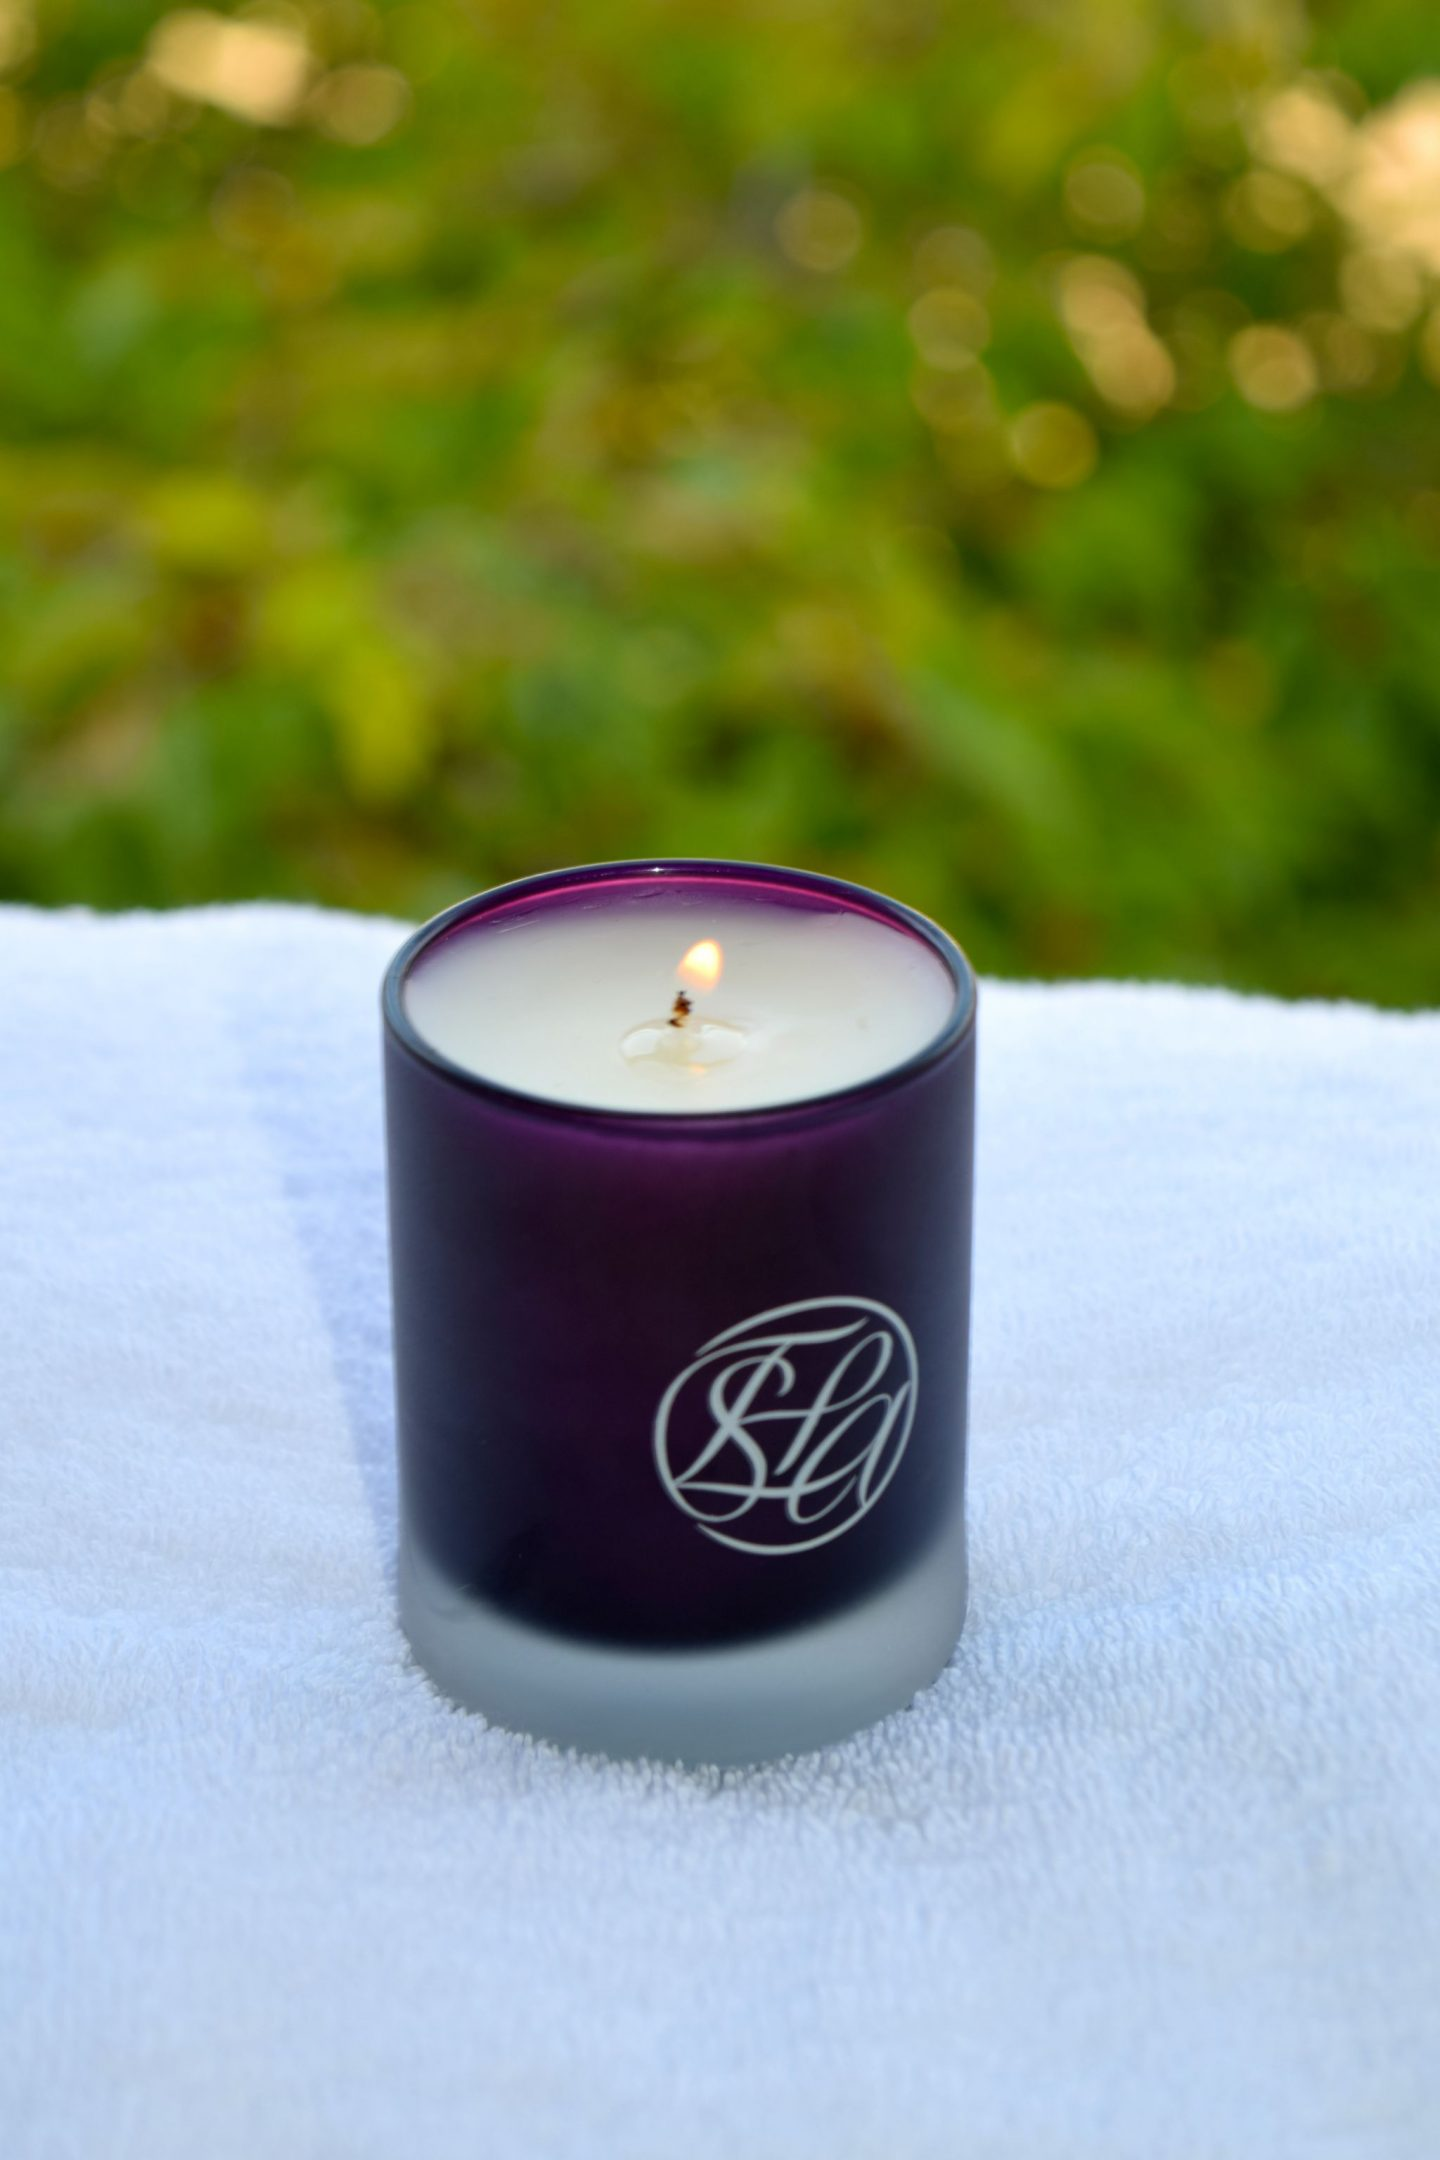 ESPA Moments of Peace candle